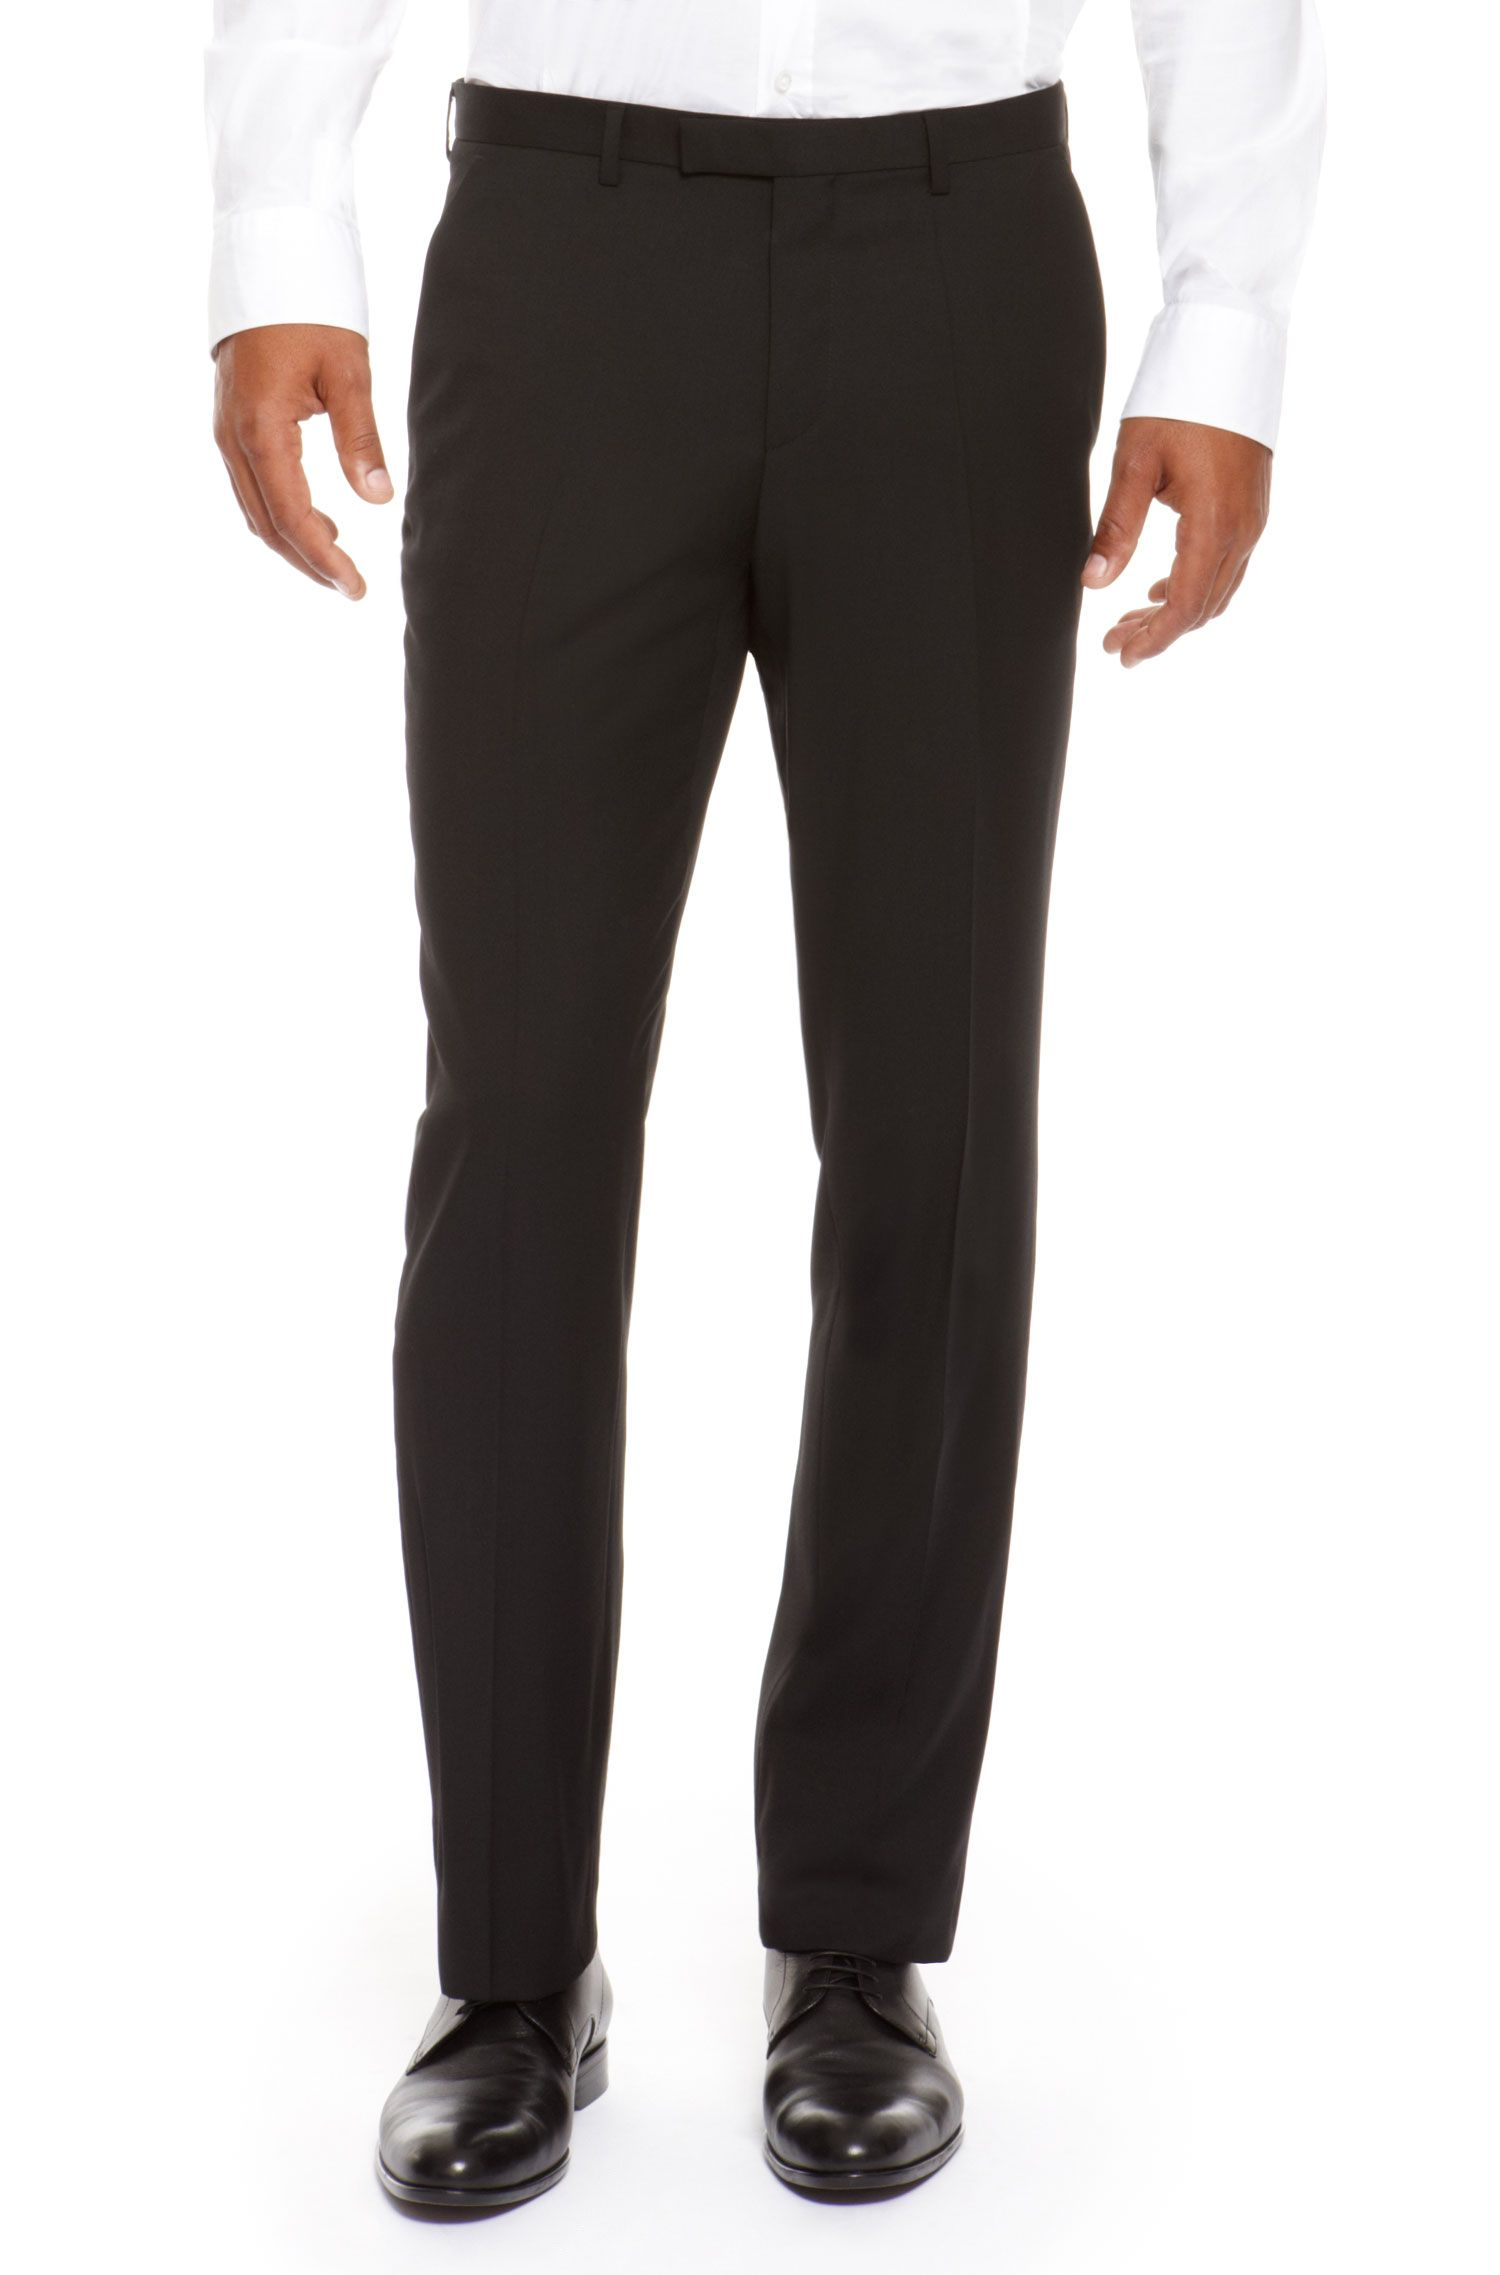 'Sharp' | Regular Fit, Virgin Wool Dress Pants